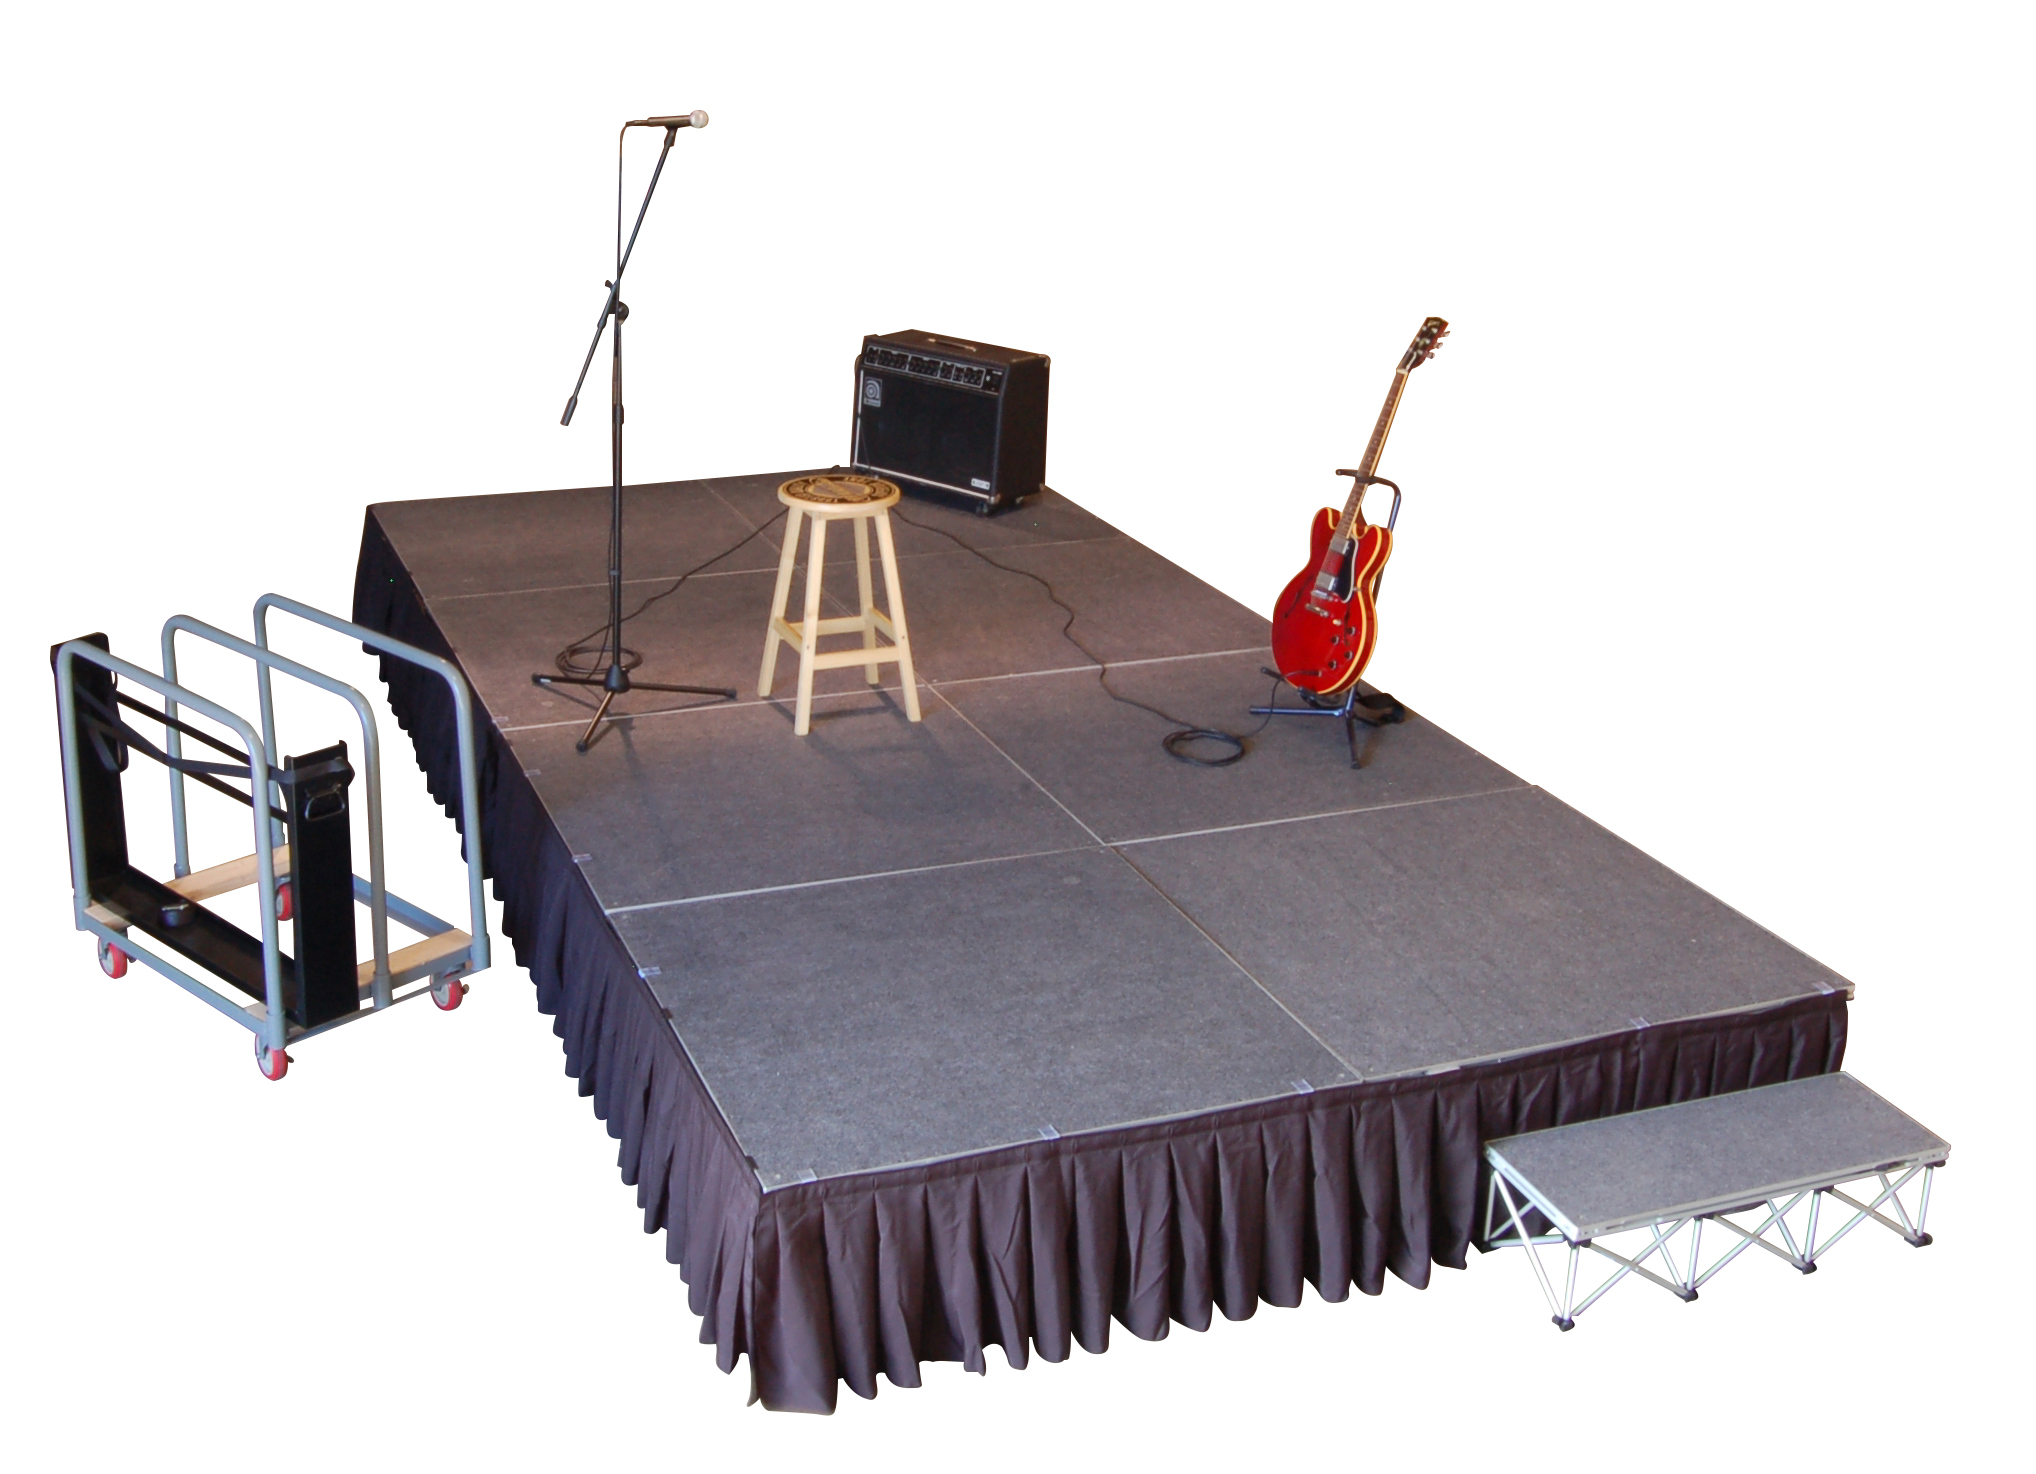 destination events stage rental destination events eugene oregon. Black Bedroom Furniture Sets. Home Design Ideas